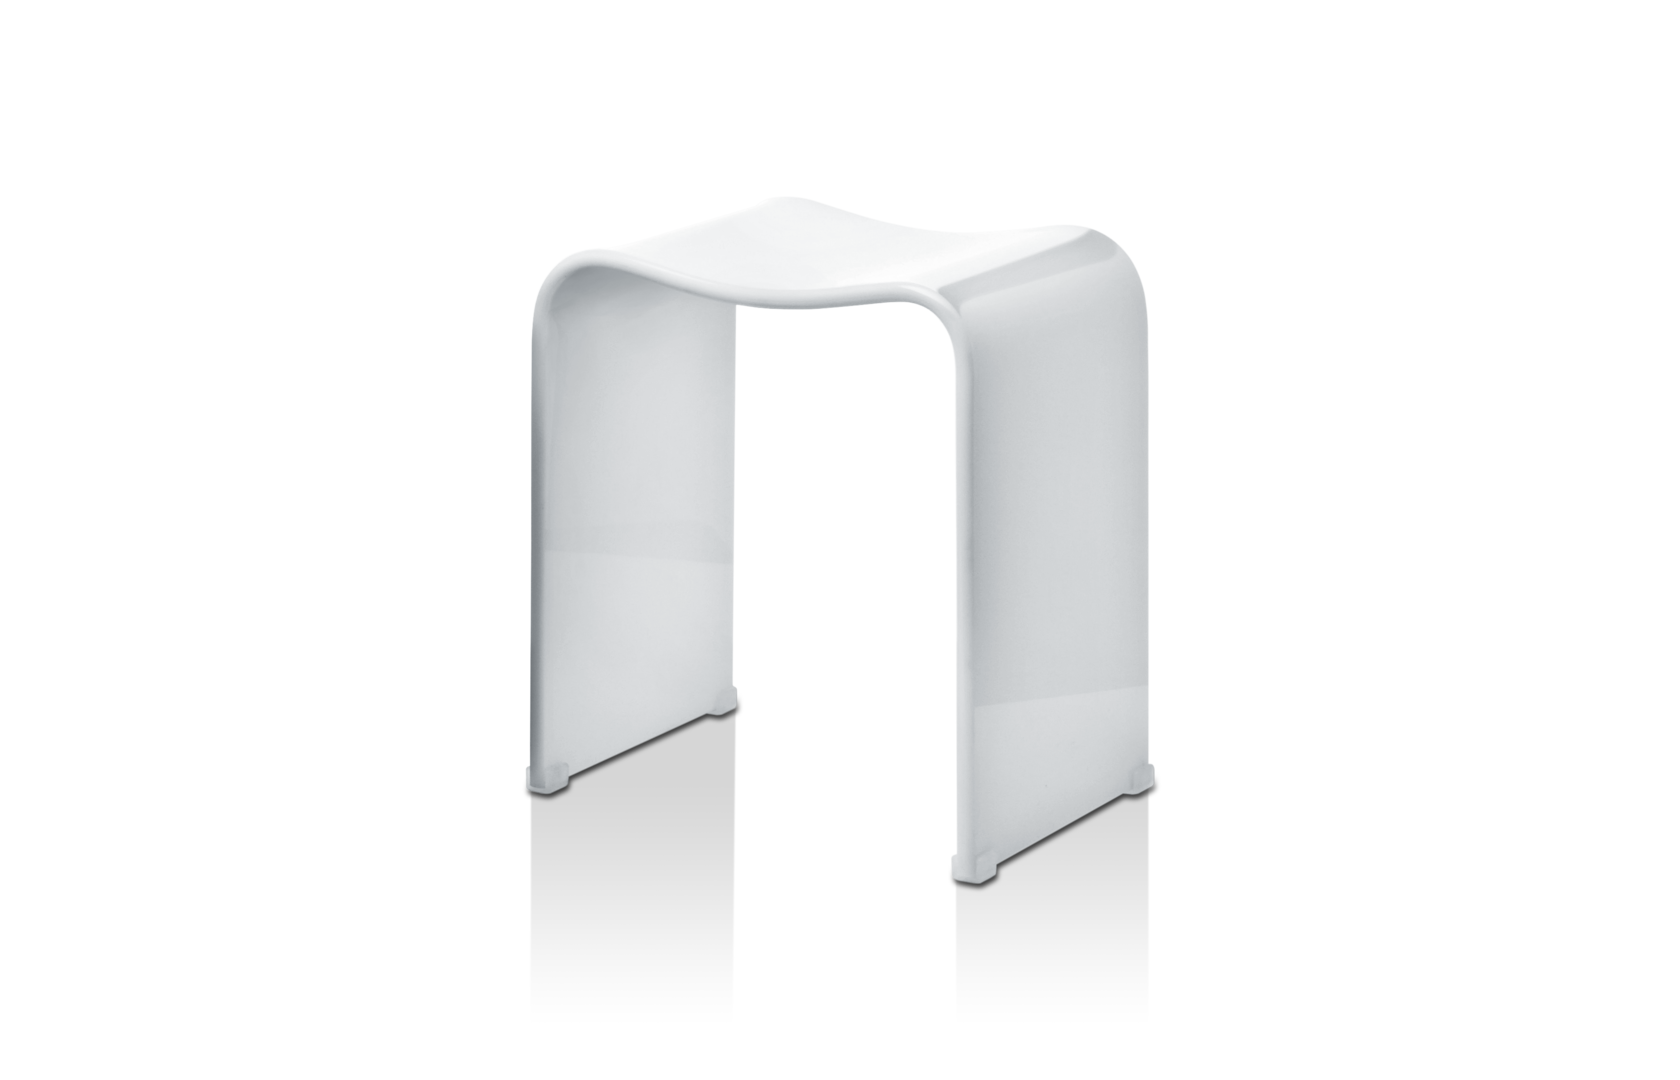 stool for the bathroom dw 80 decor walther. Black Bedroom Furniture Sets. Home Design Ideas